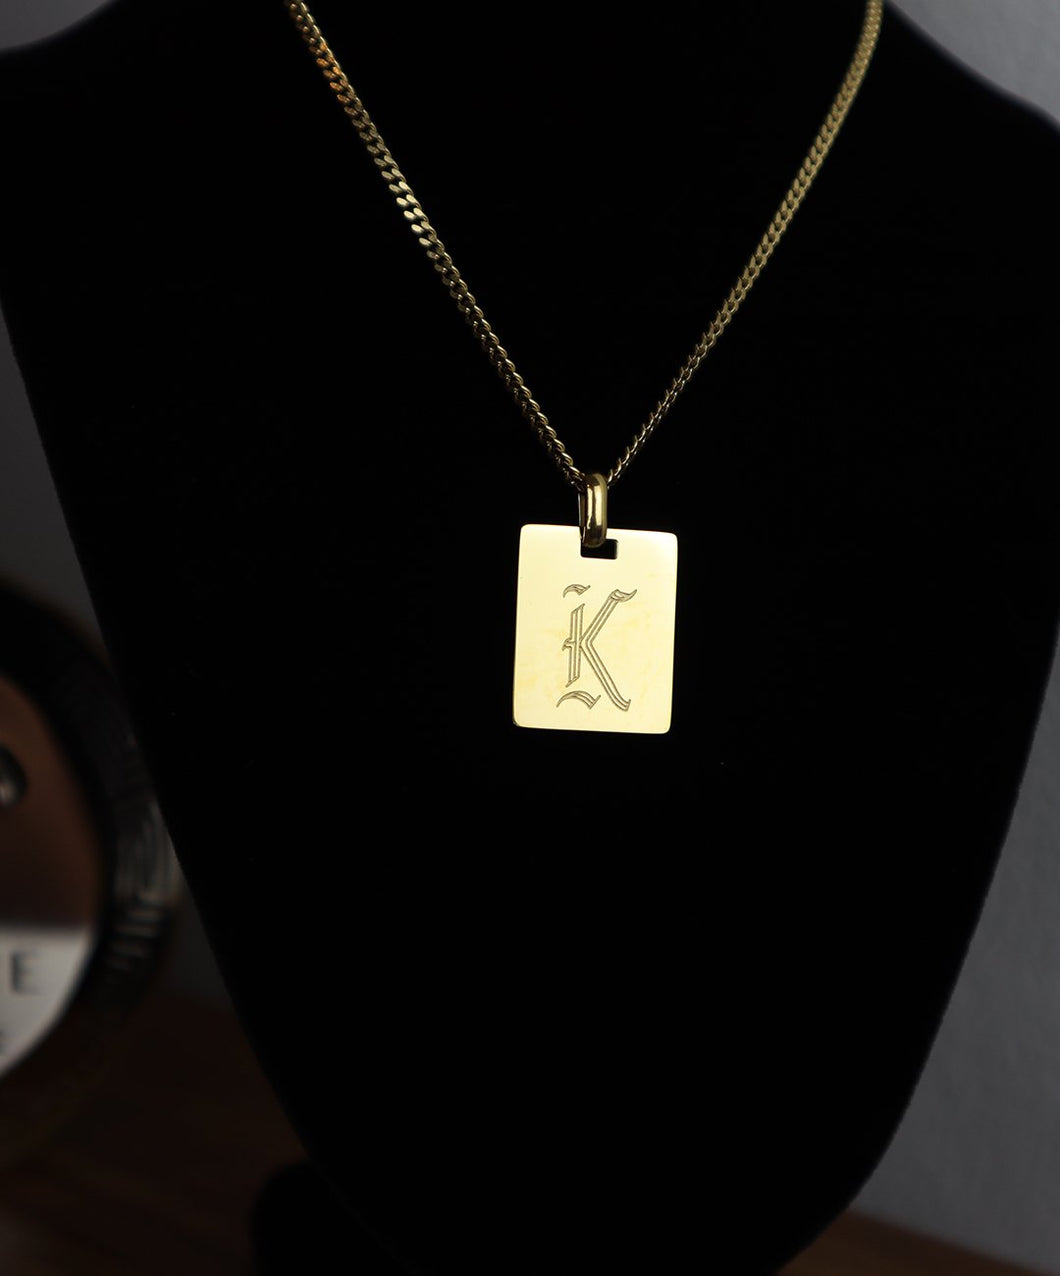 18k Gold Plate Necklace: K